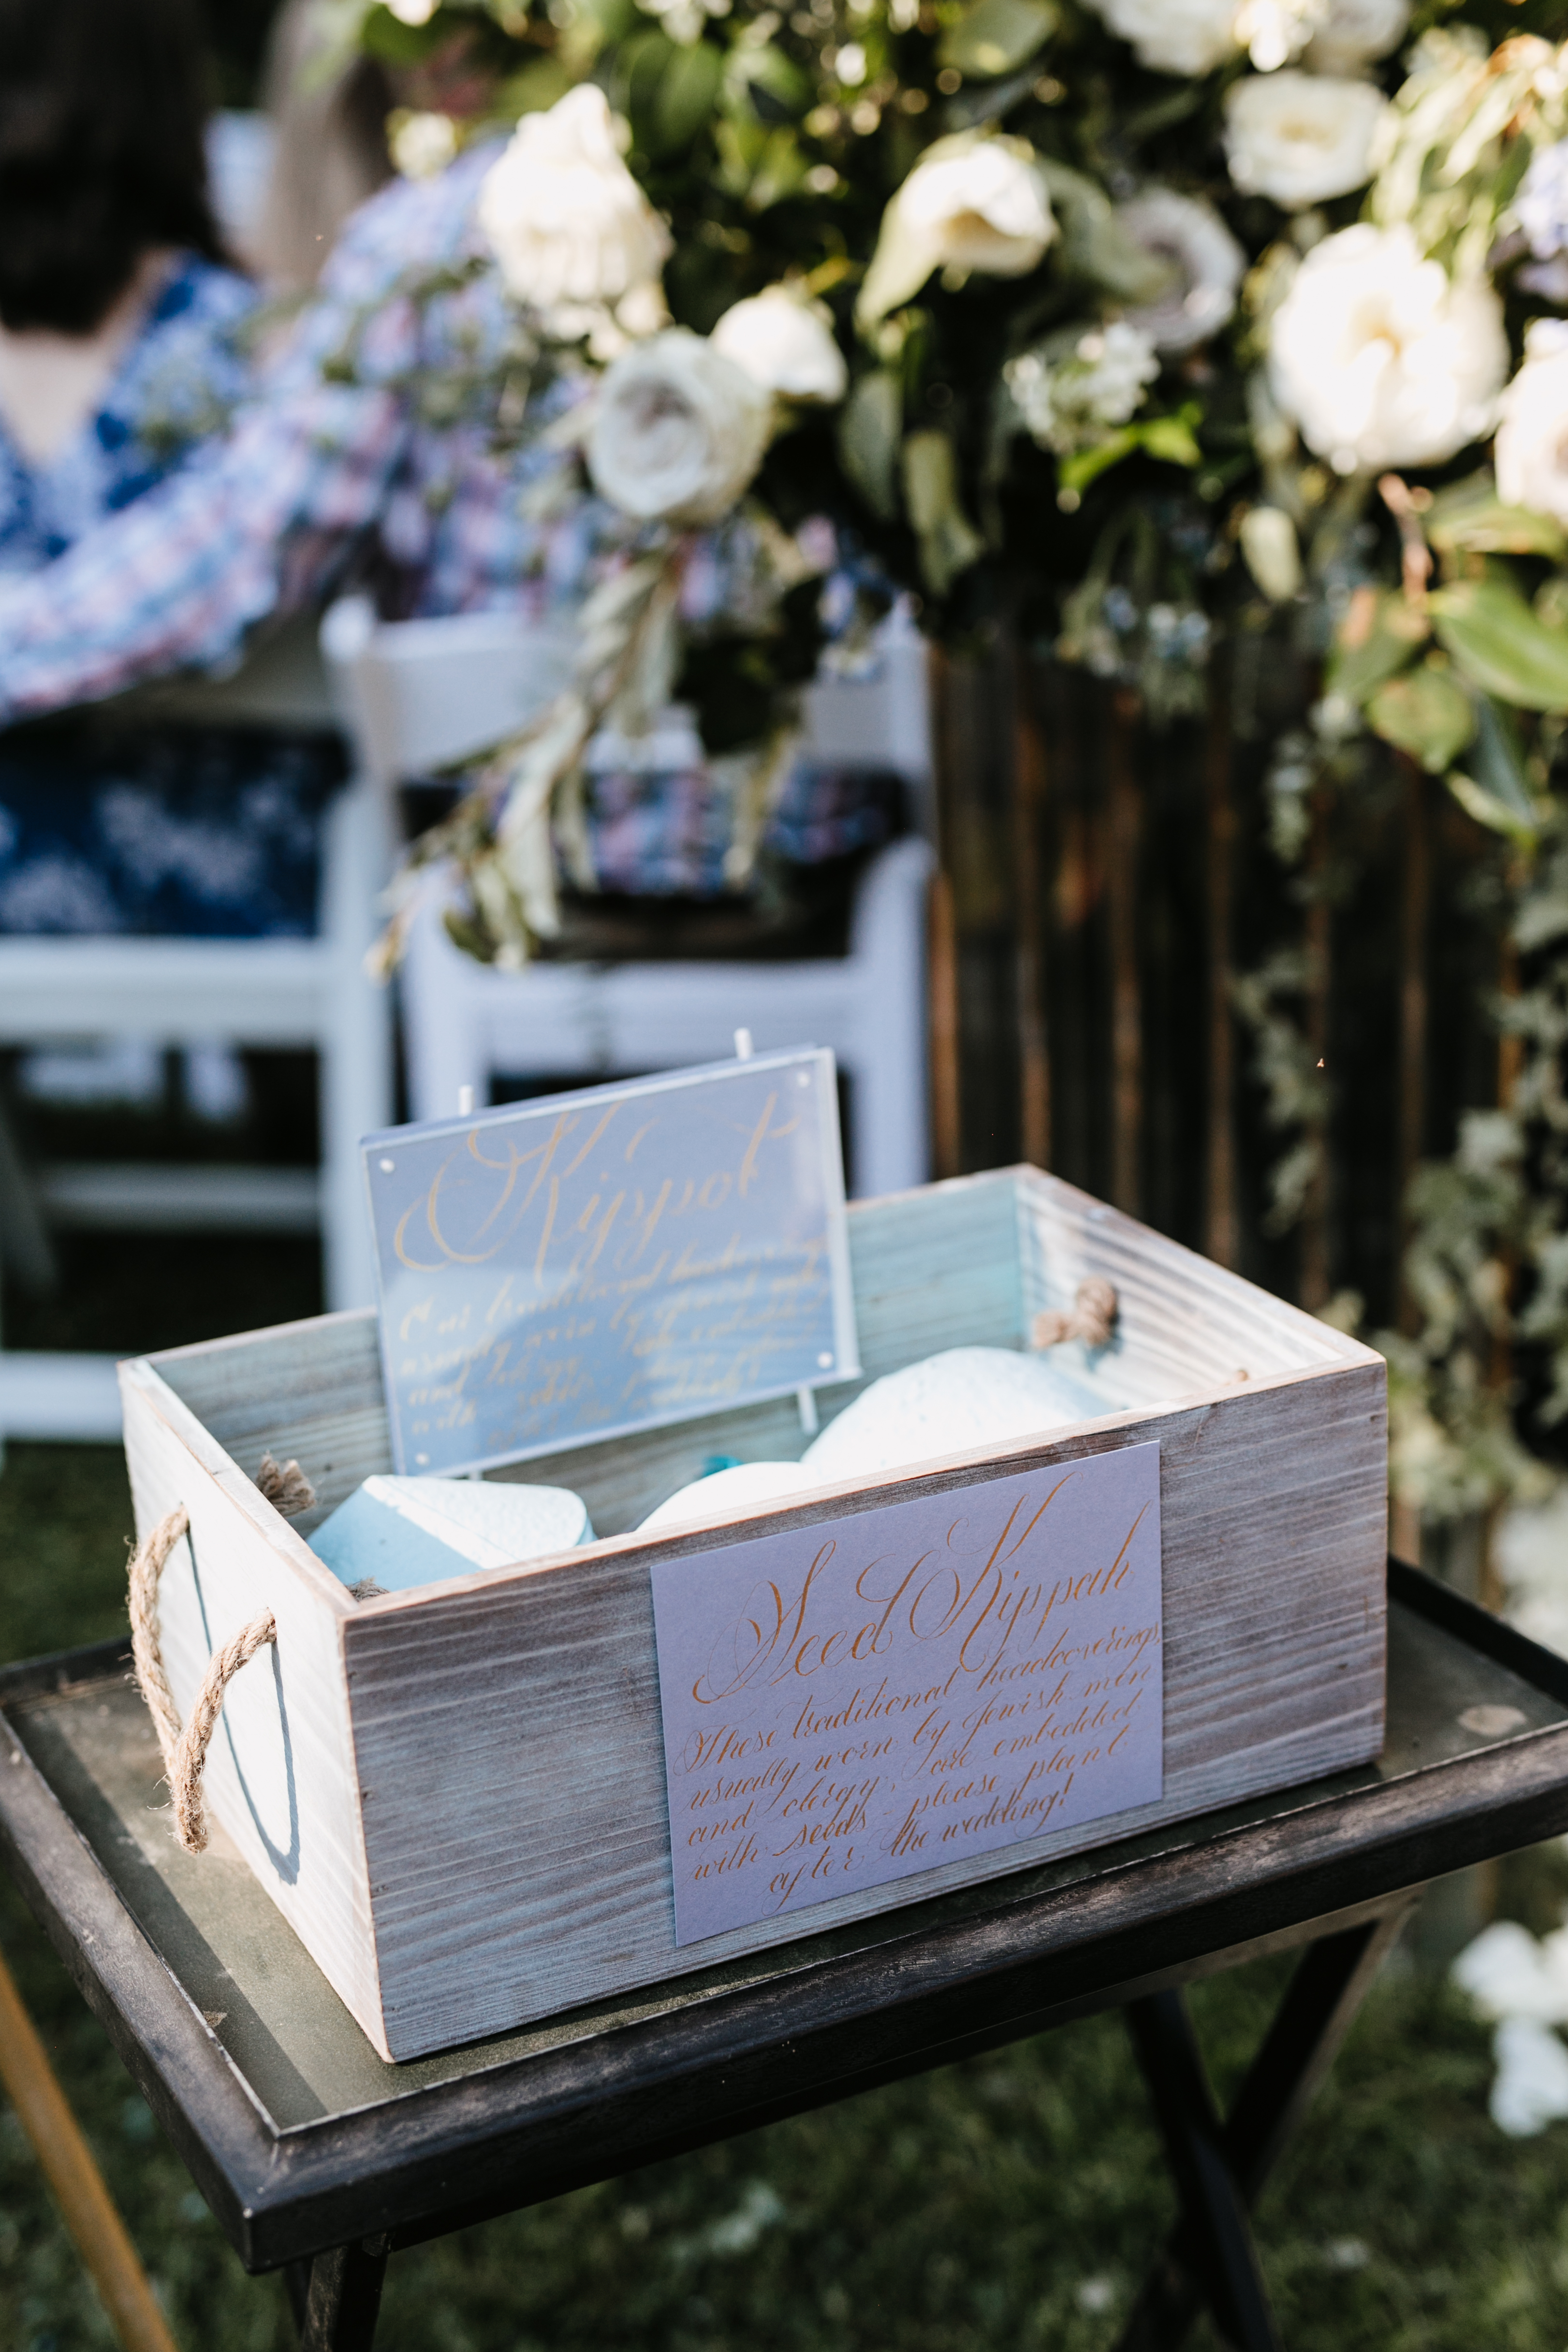 wooden box with ceremony programs